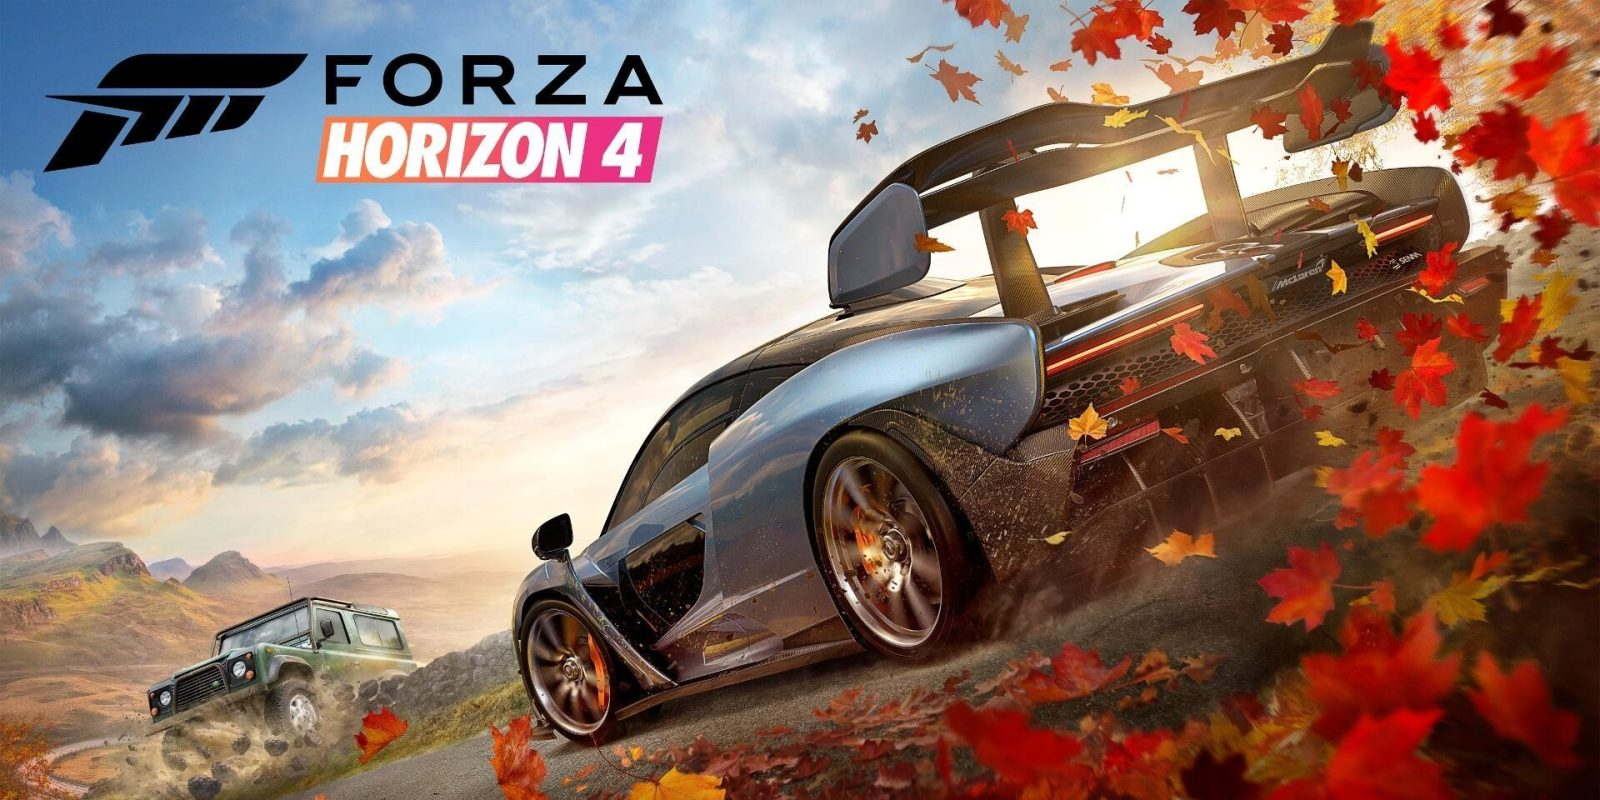 Today's Best Game Deals: Forza Horizon 4 Ultimate $30, Civilization VI Switch $20, more